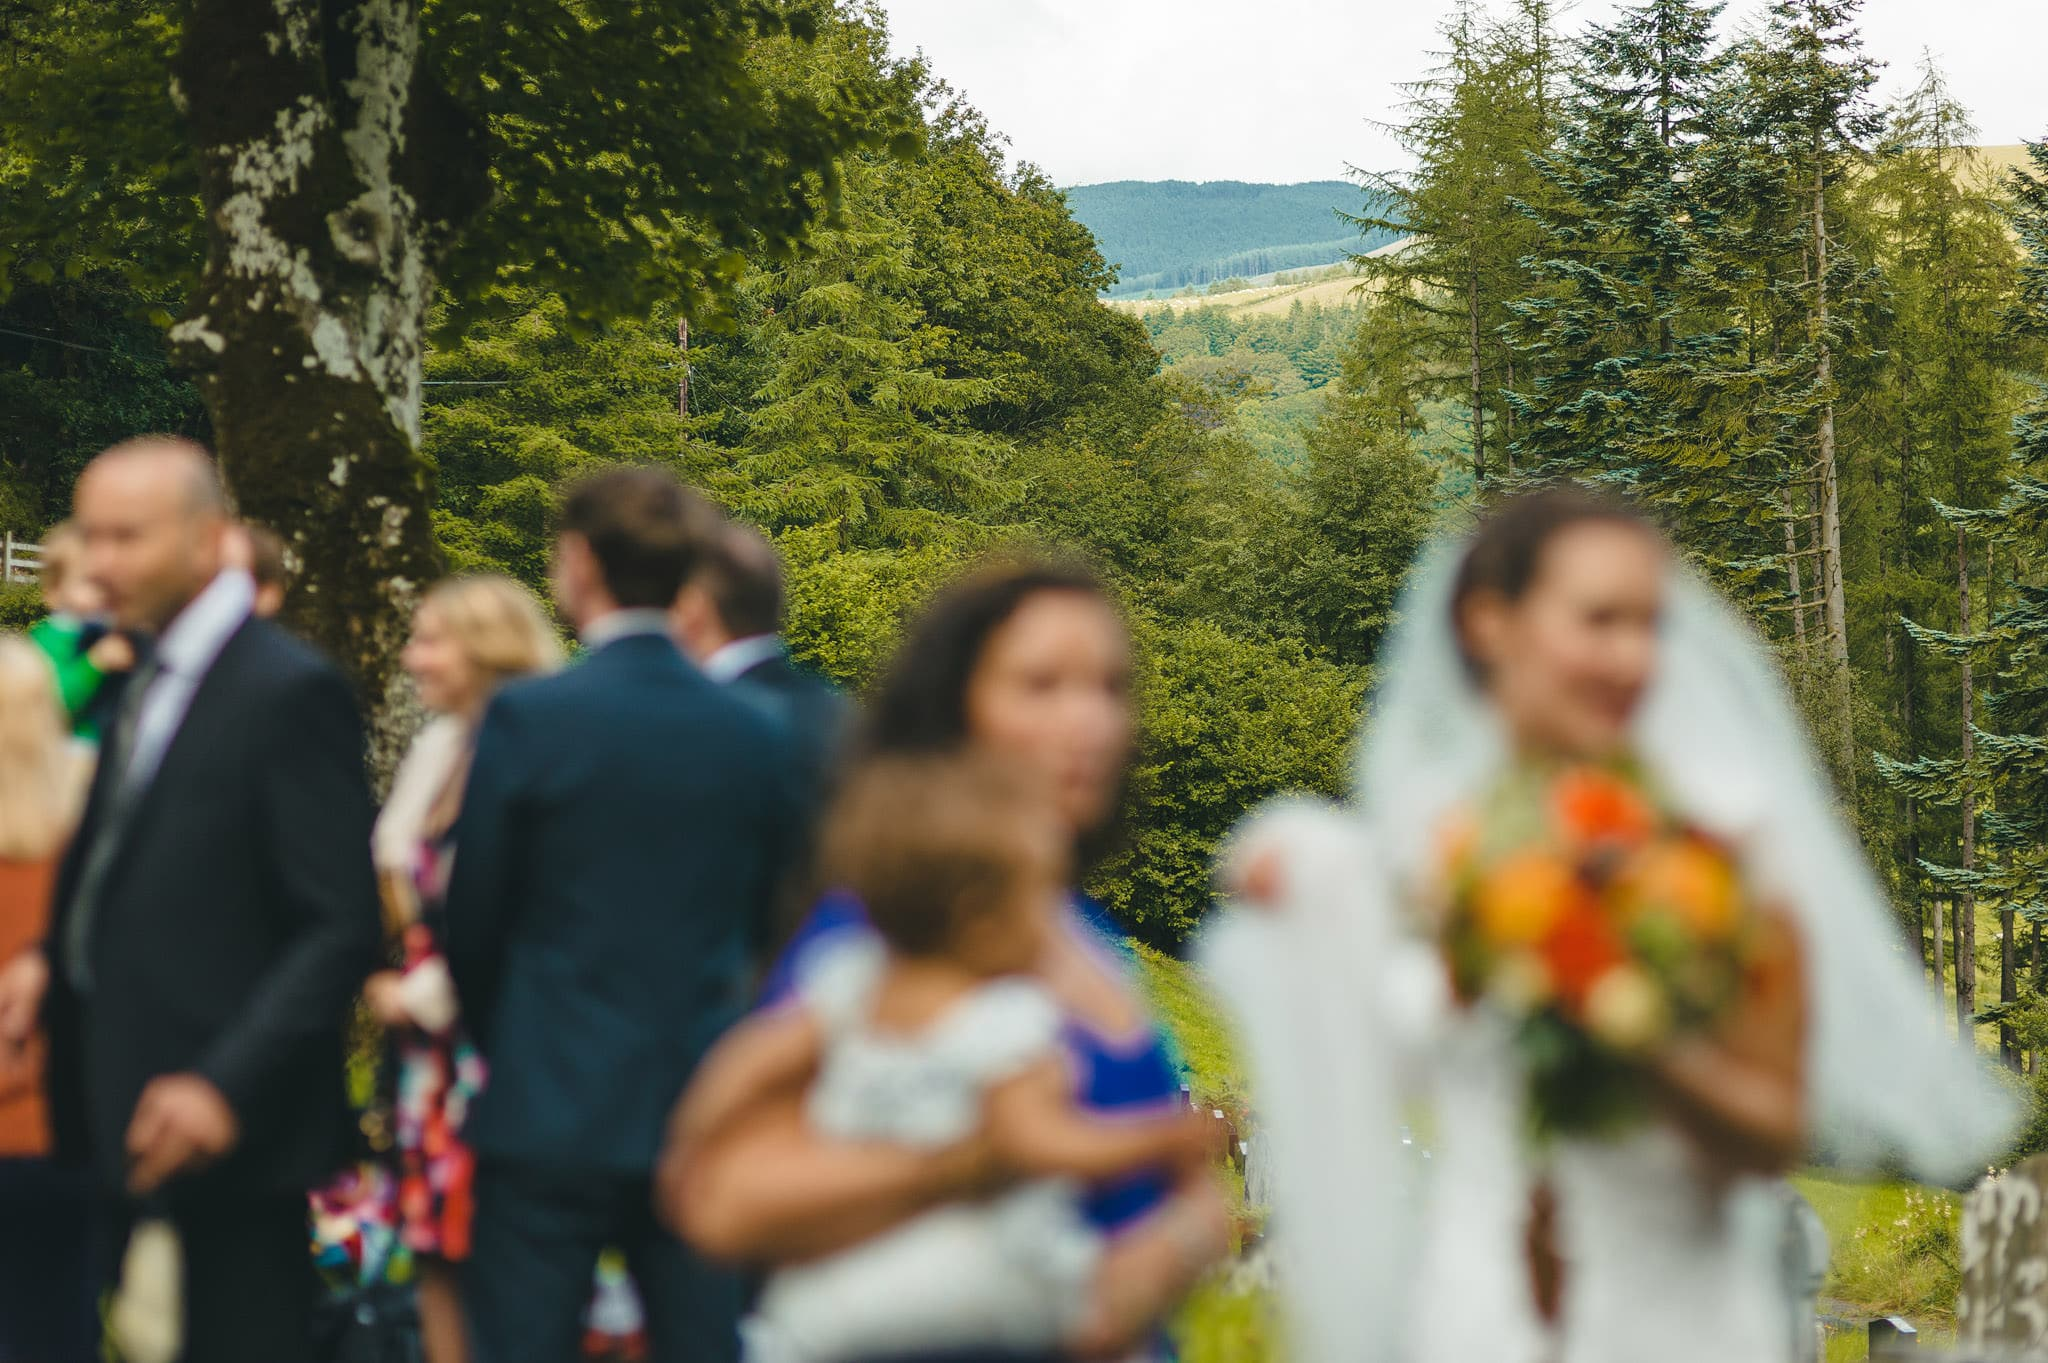 Wedding photography at Y Talbot Hotel in Tregaron, Wales | Tina + Phil 30